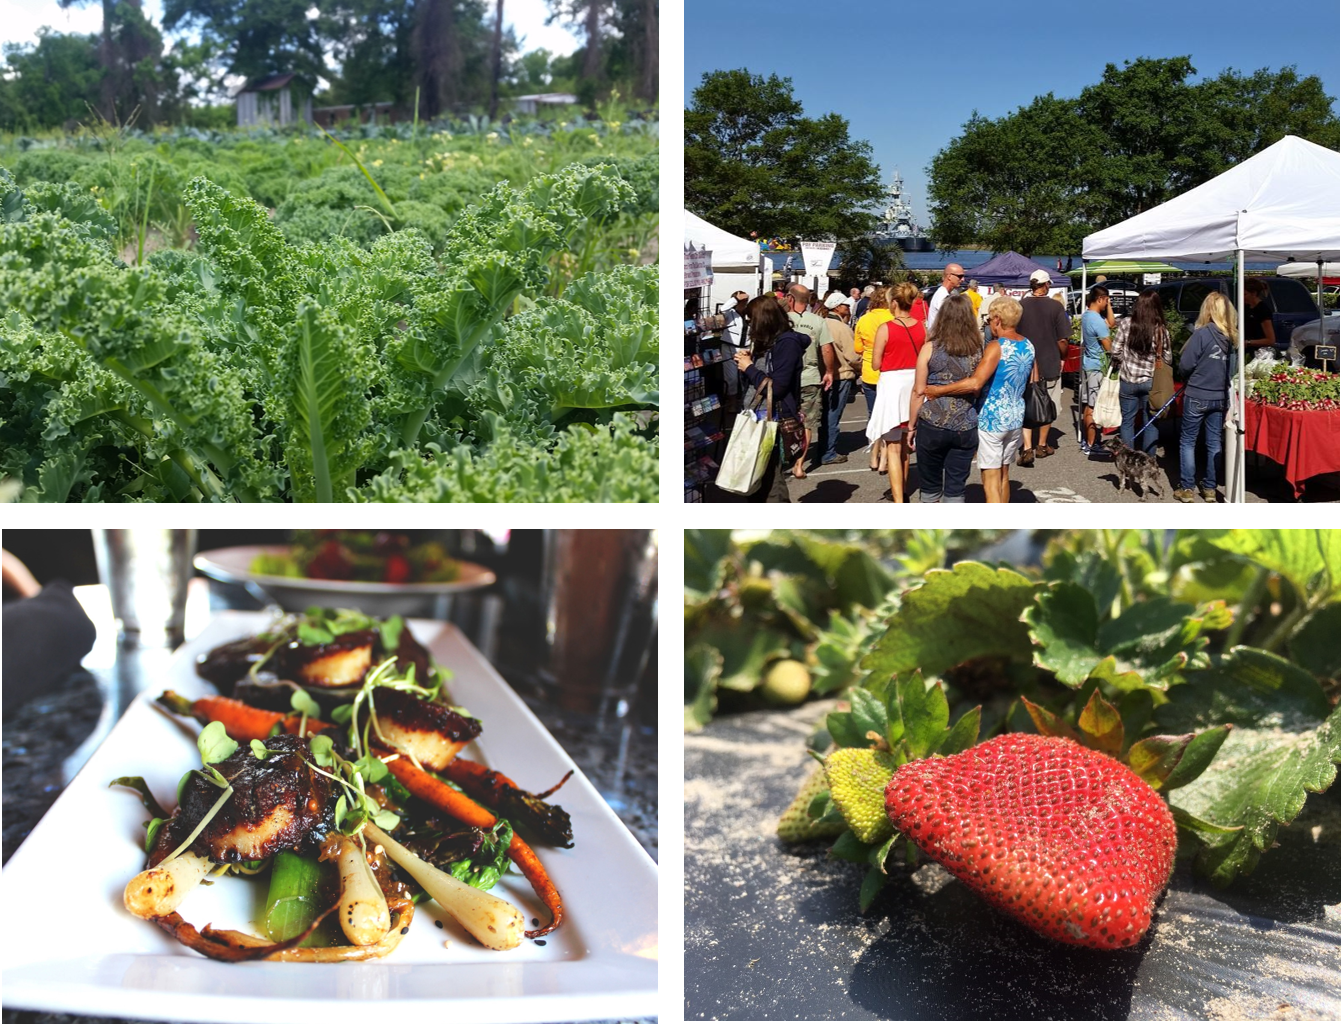 The Cape Fear Food Council will use their grant to create a local food guide.